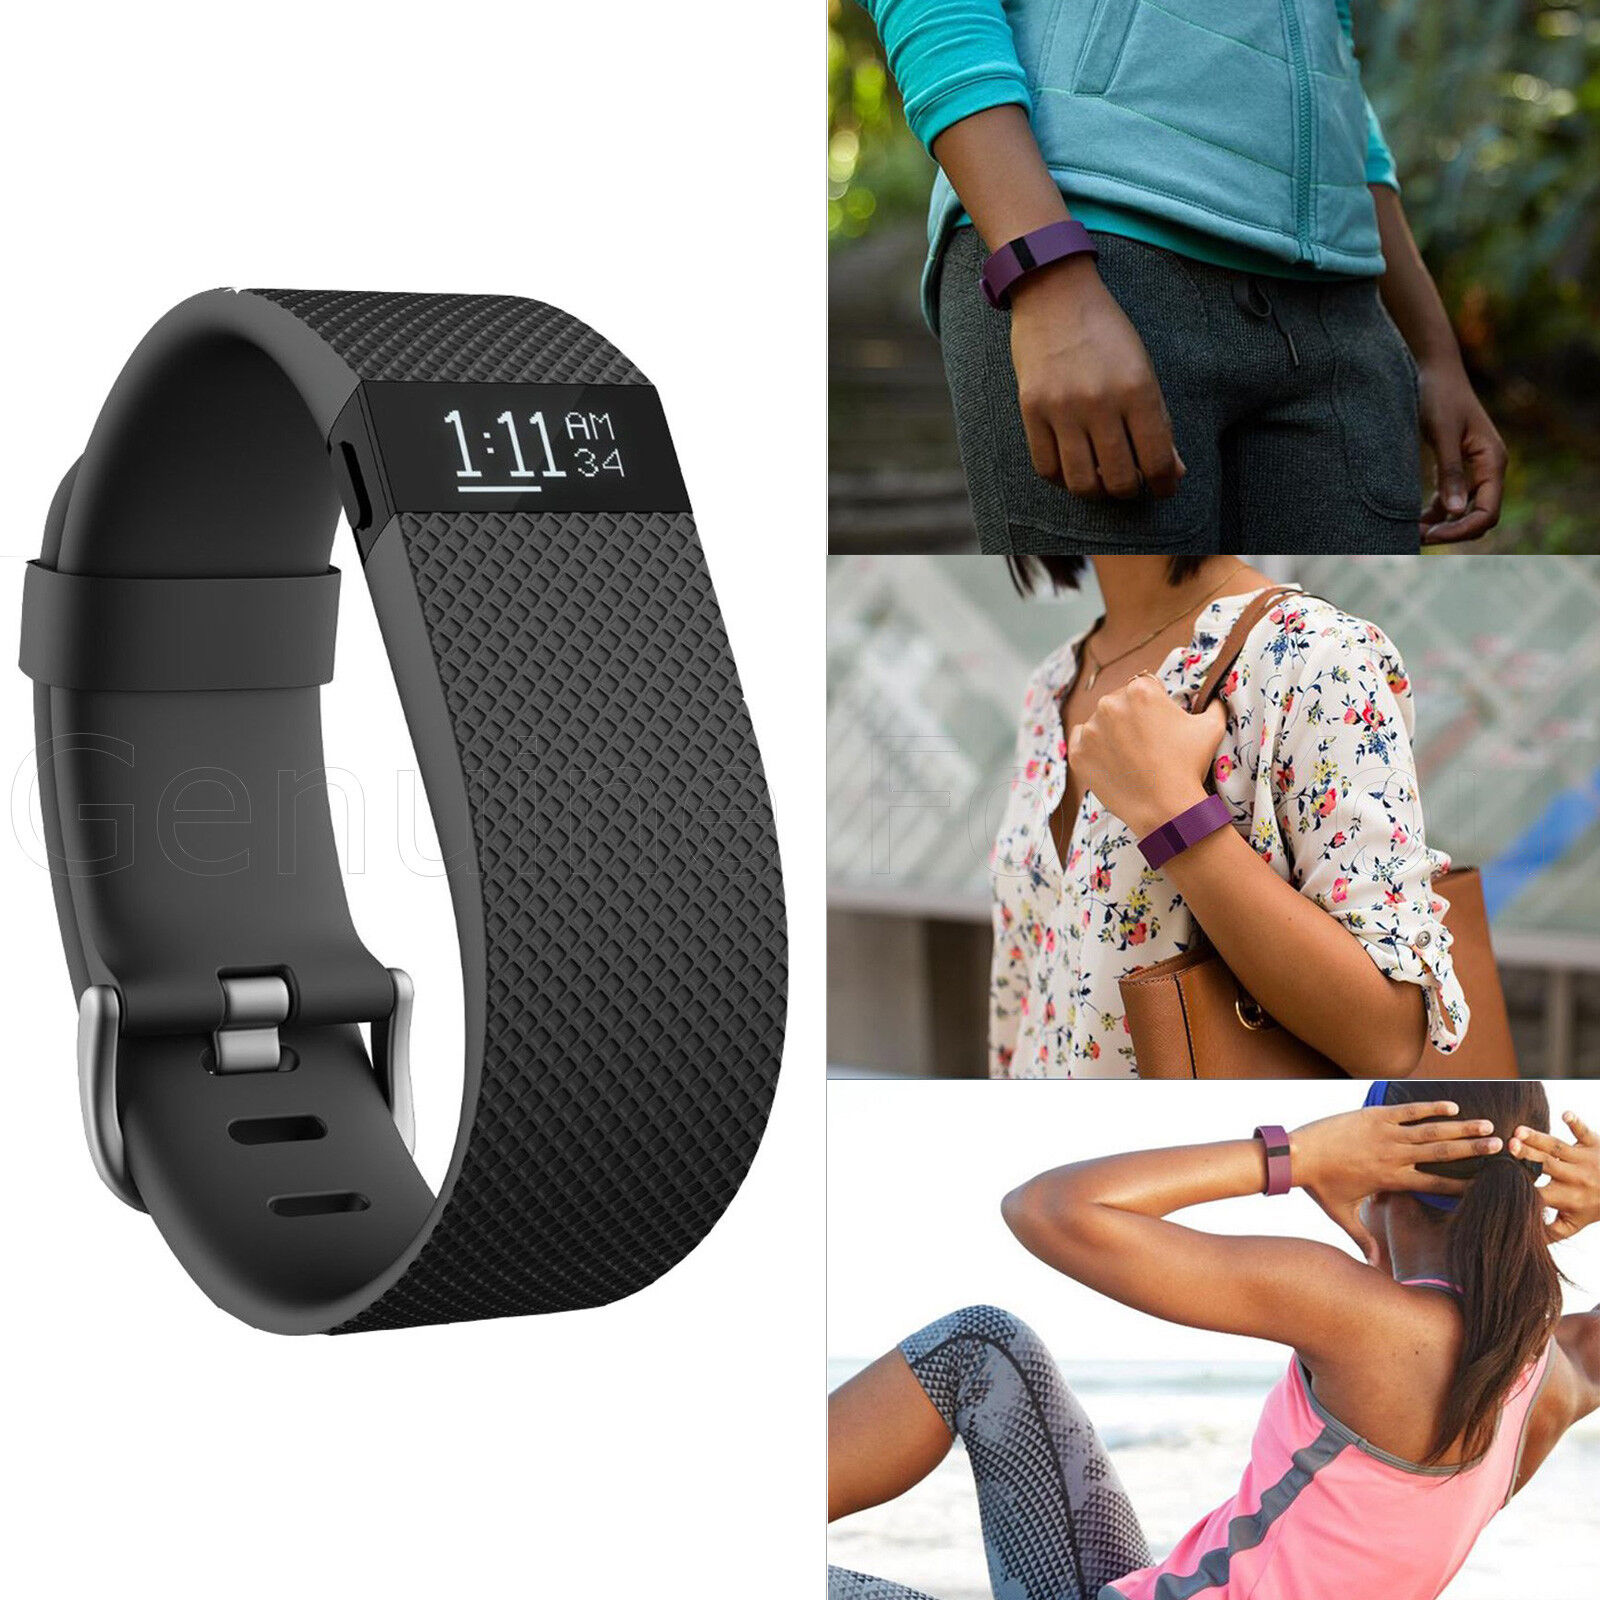 Genuine FitBit ChargeHR blueetooth Activity YOGA Fitness GYM Workout Wrist Band